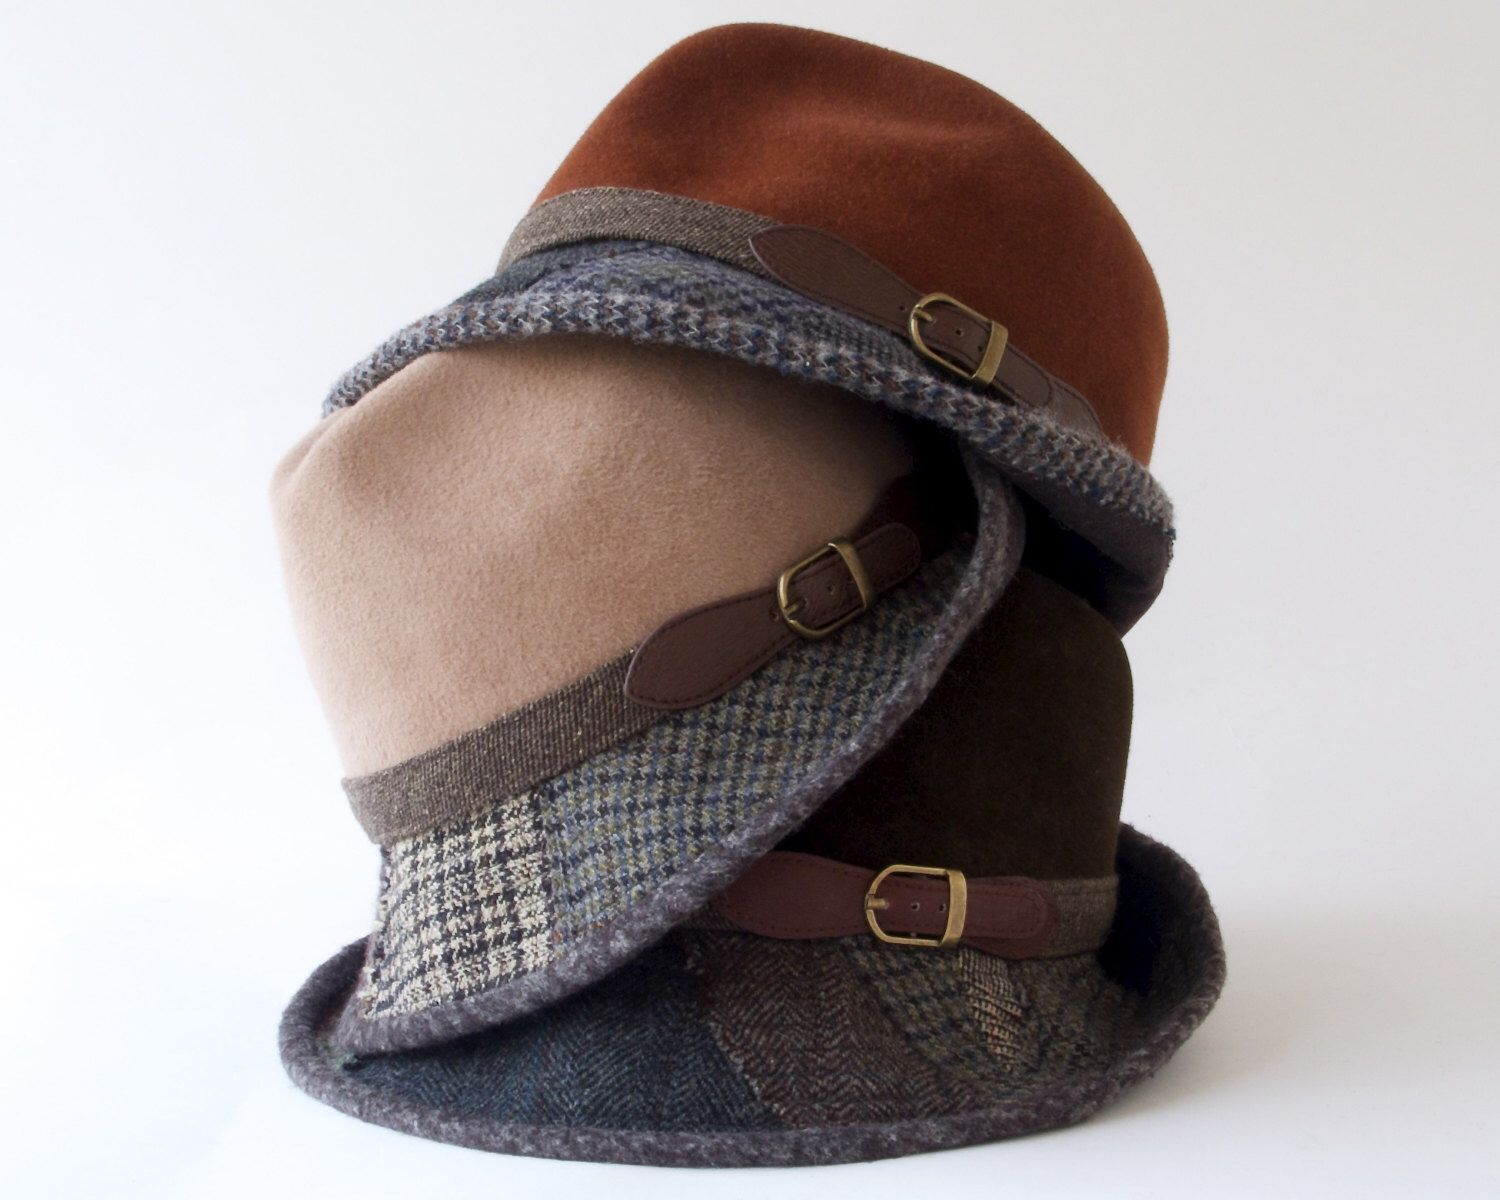 c9dffed976 Pin by Michelle Nicole on My Closet Needs... | Fedora hat women ...